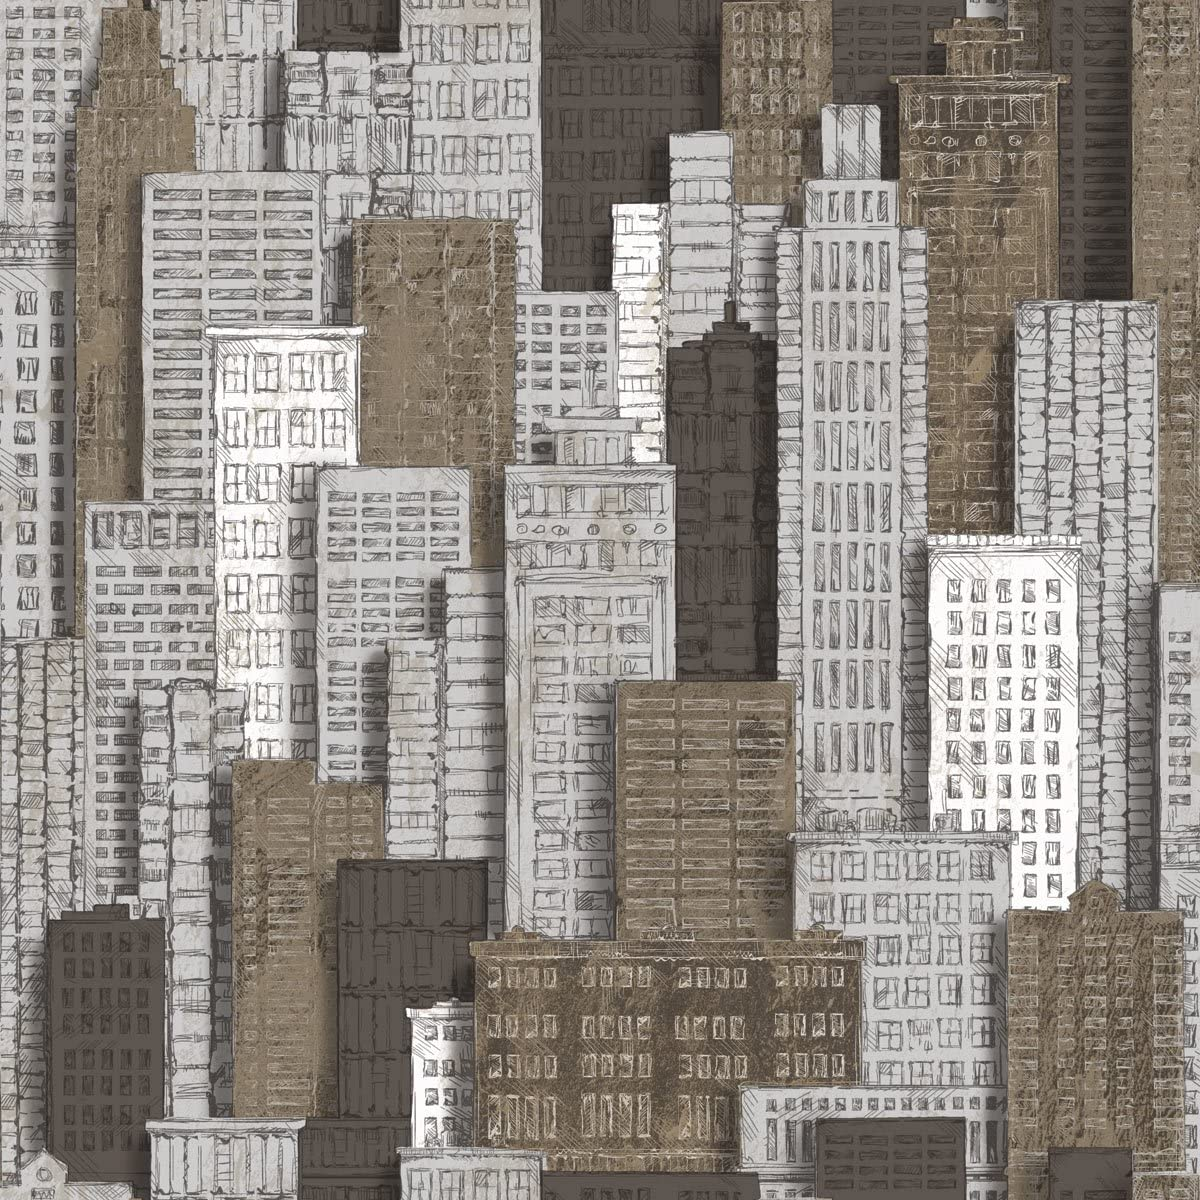 Wallpaper for Home, Office, Retail/City Perspective Wallpaper, Modern Geometry Design, Urban Art (Sky Scrapers, Vintage Wallpaper), Beige, Grey, White, Silver/Roll 53 cm x 10 m (21in x 32.8ft)